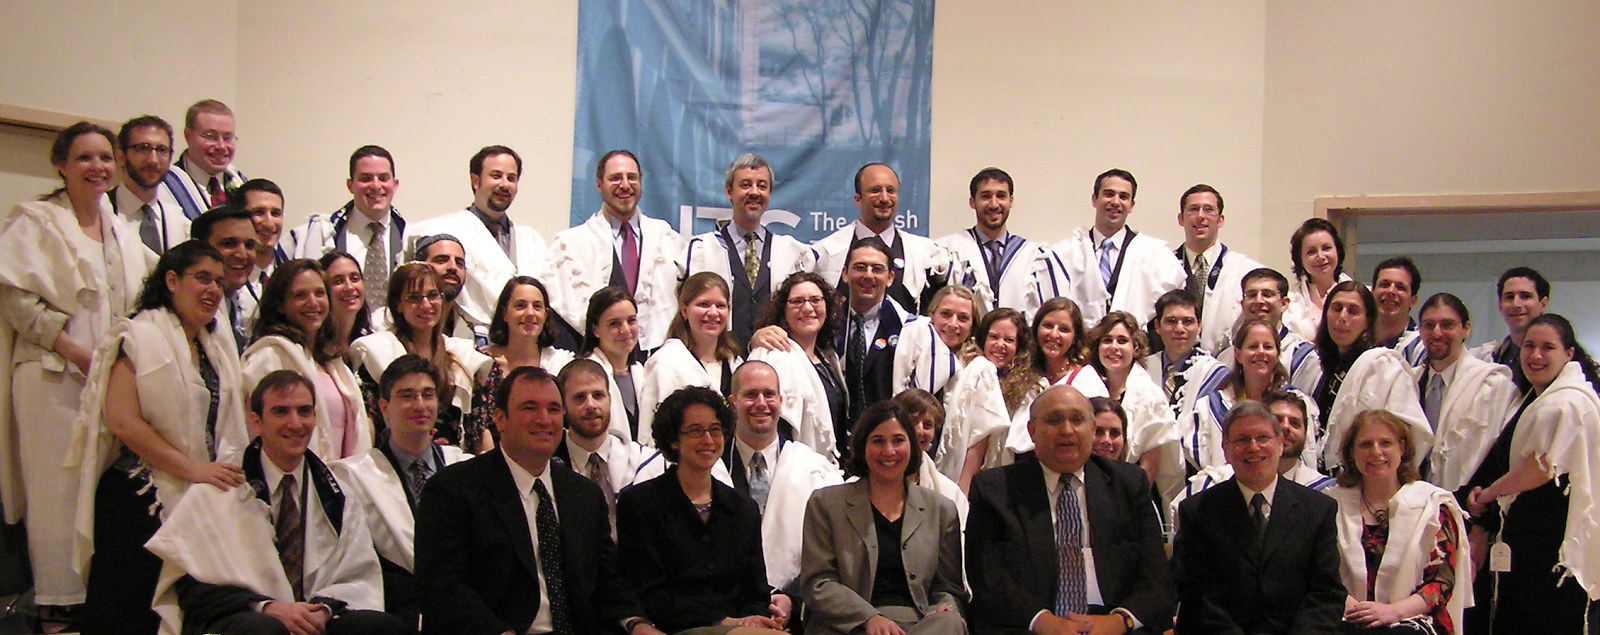 Jewish Theological Seminary Rabbinical School Class of 2004 - Rabbi Jason Miller